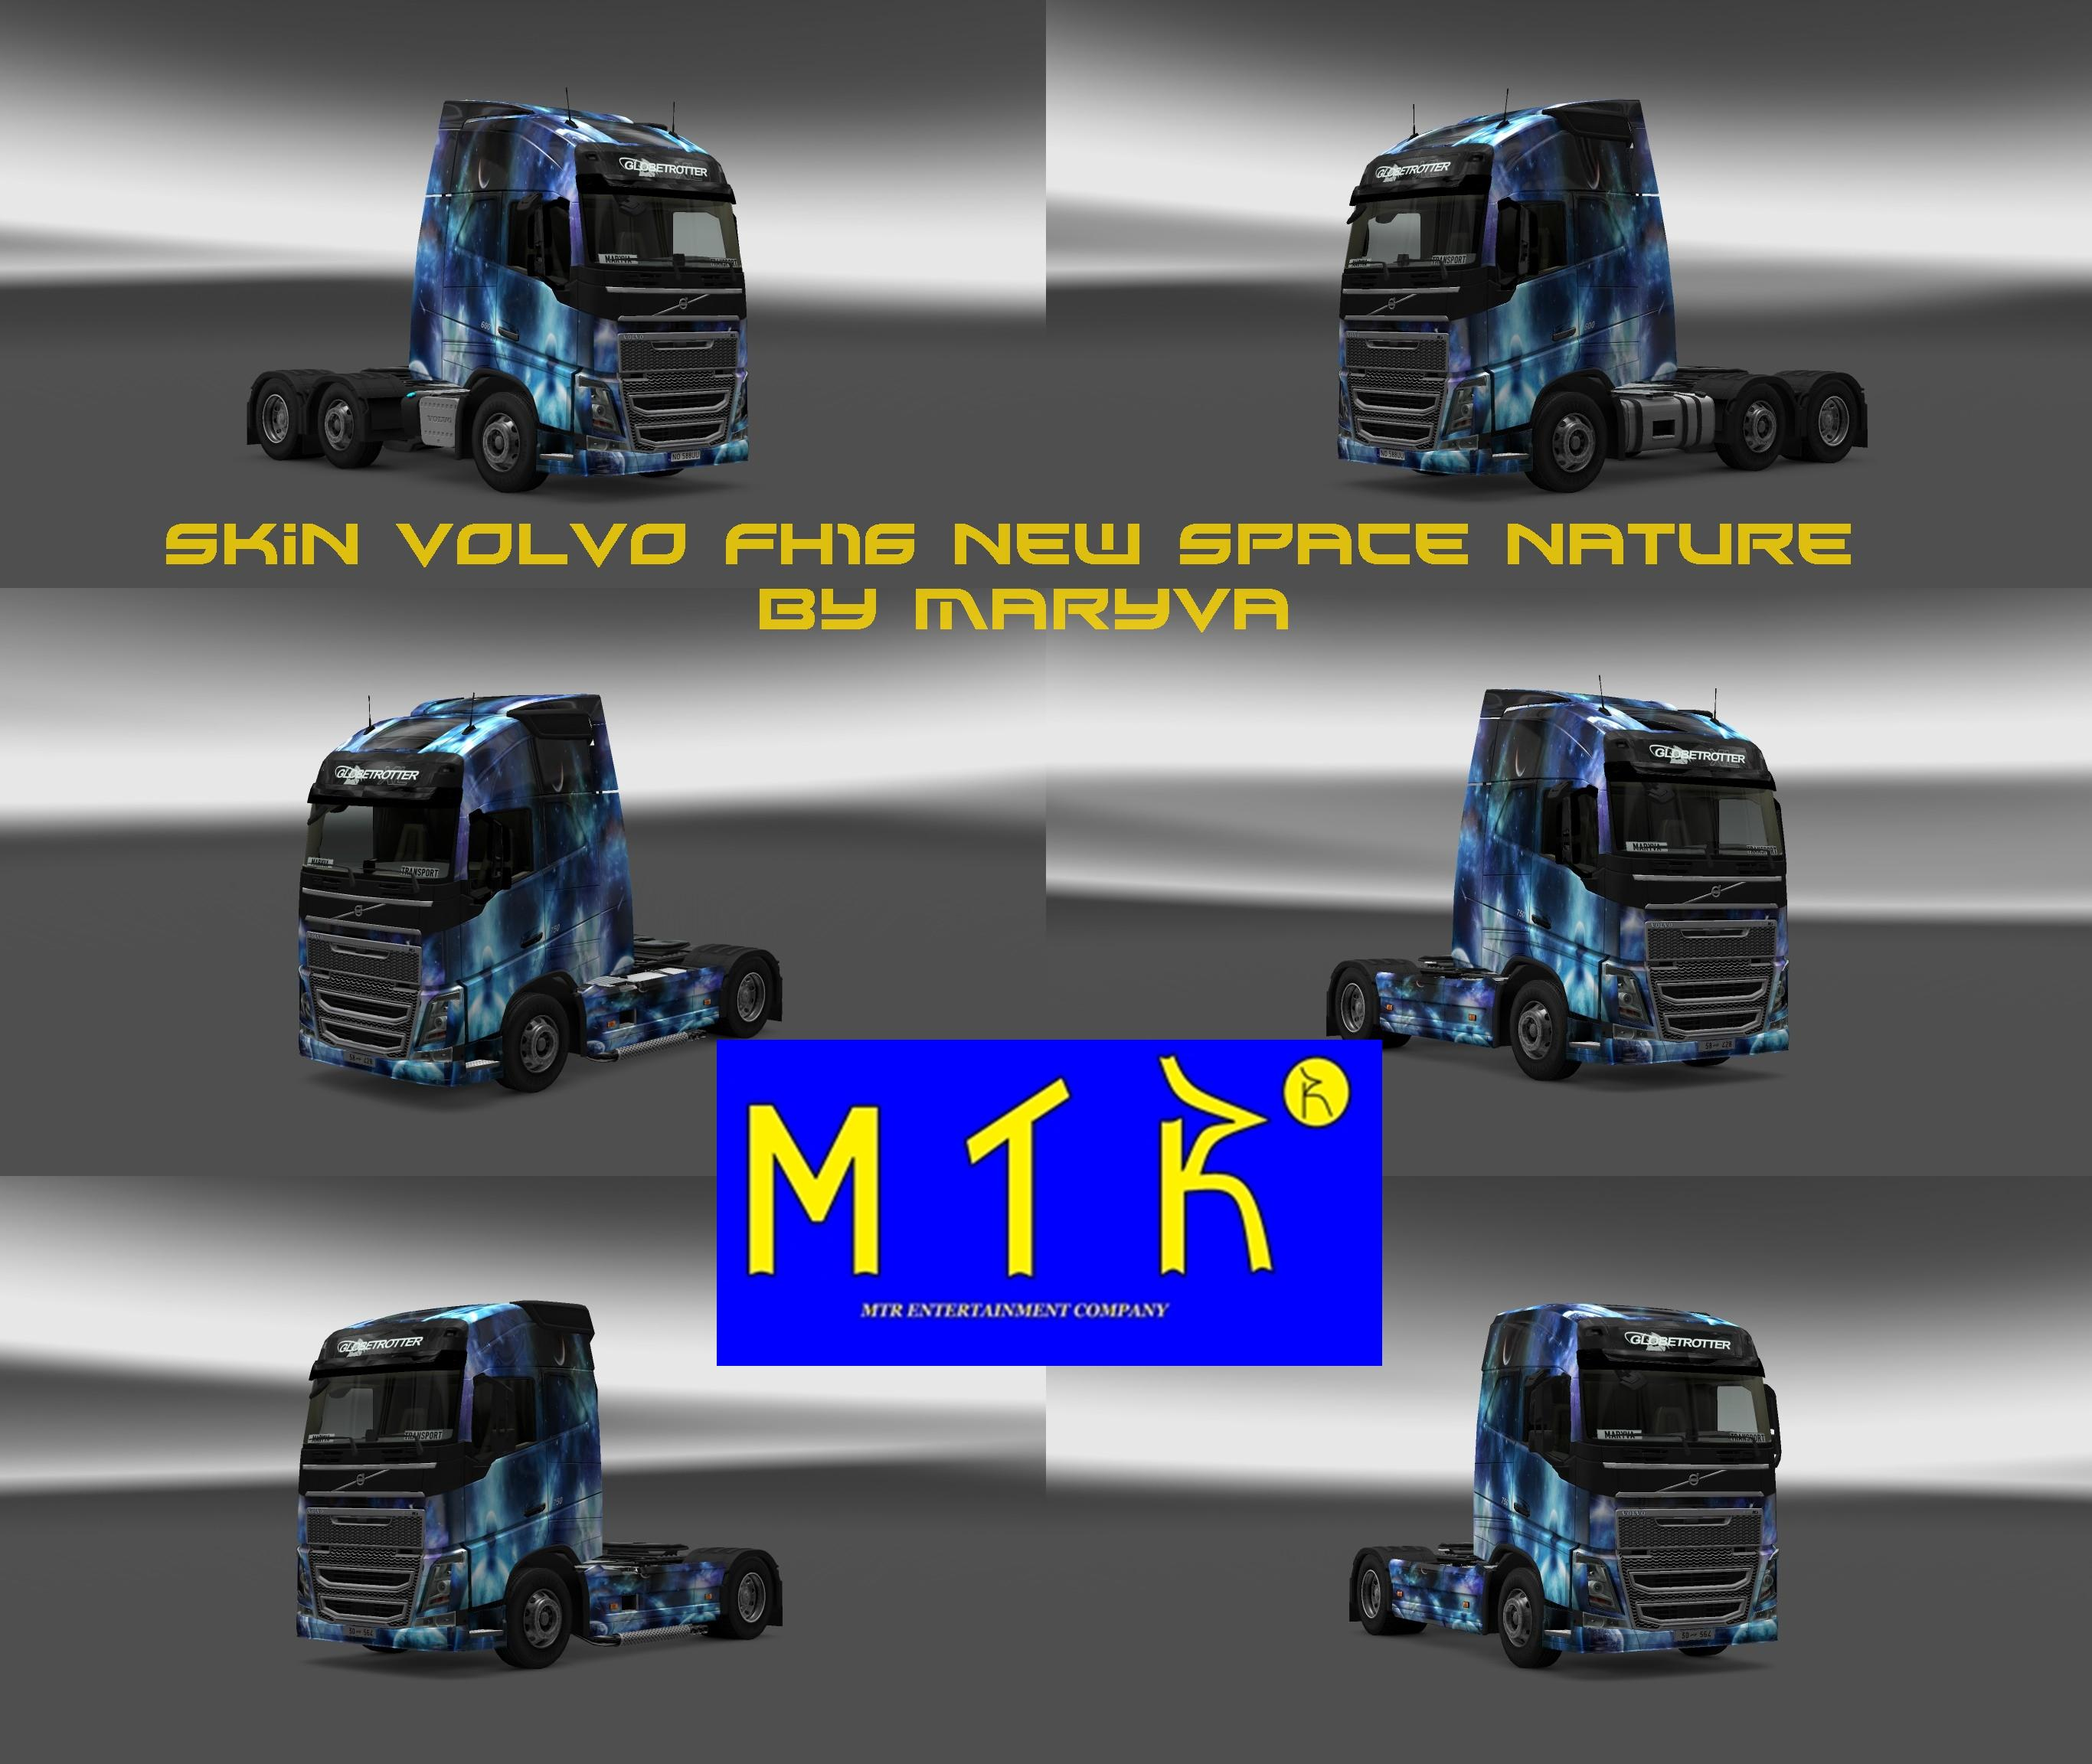 skin-volvo-fh16-new-space-nature_5